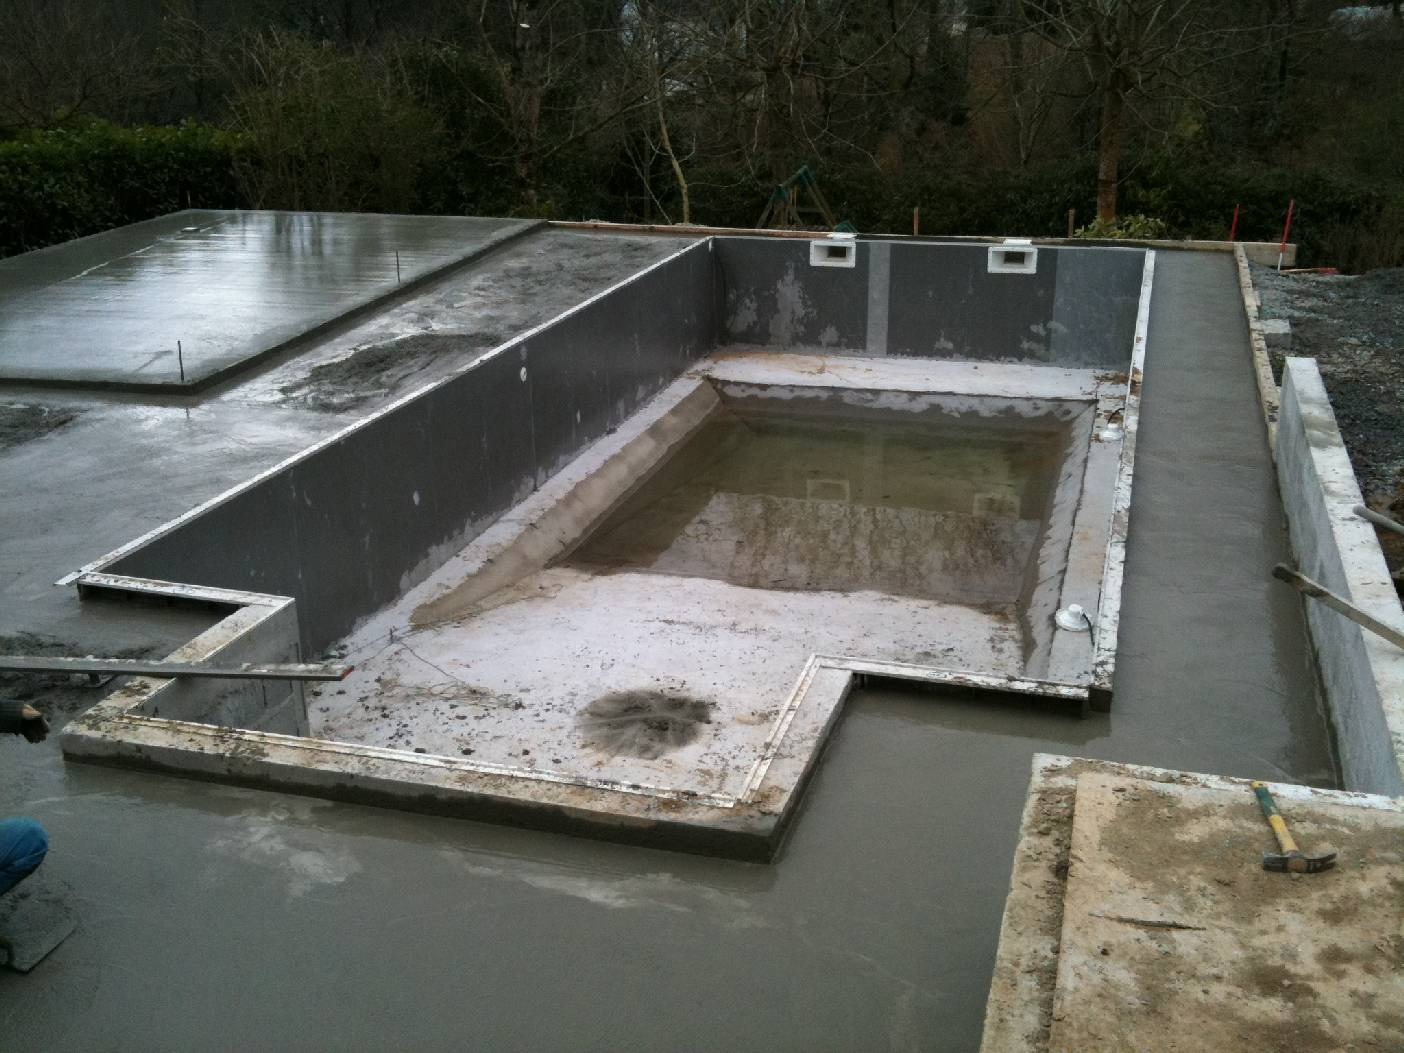 Am nagement des abords d 39 une piscine quimper goalabre for Amenagement d une piscine